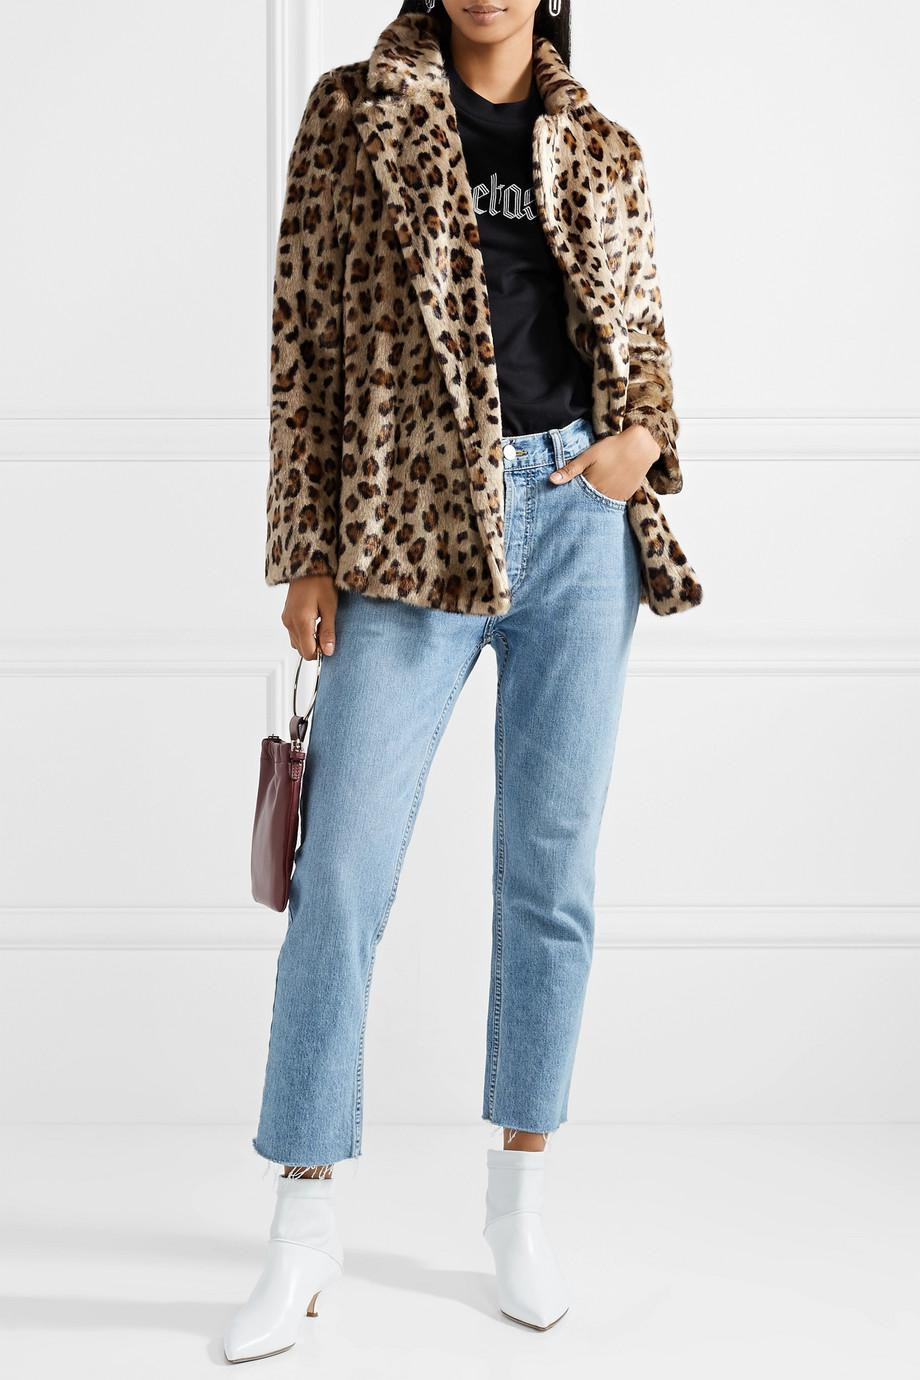 bfce5d0ac45d Theory Clairene Leopard-print Faux Fur Jacket in Brown - Lyst